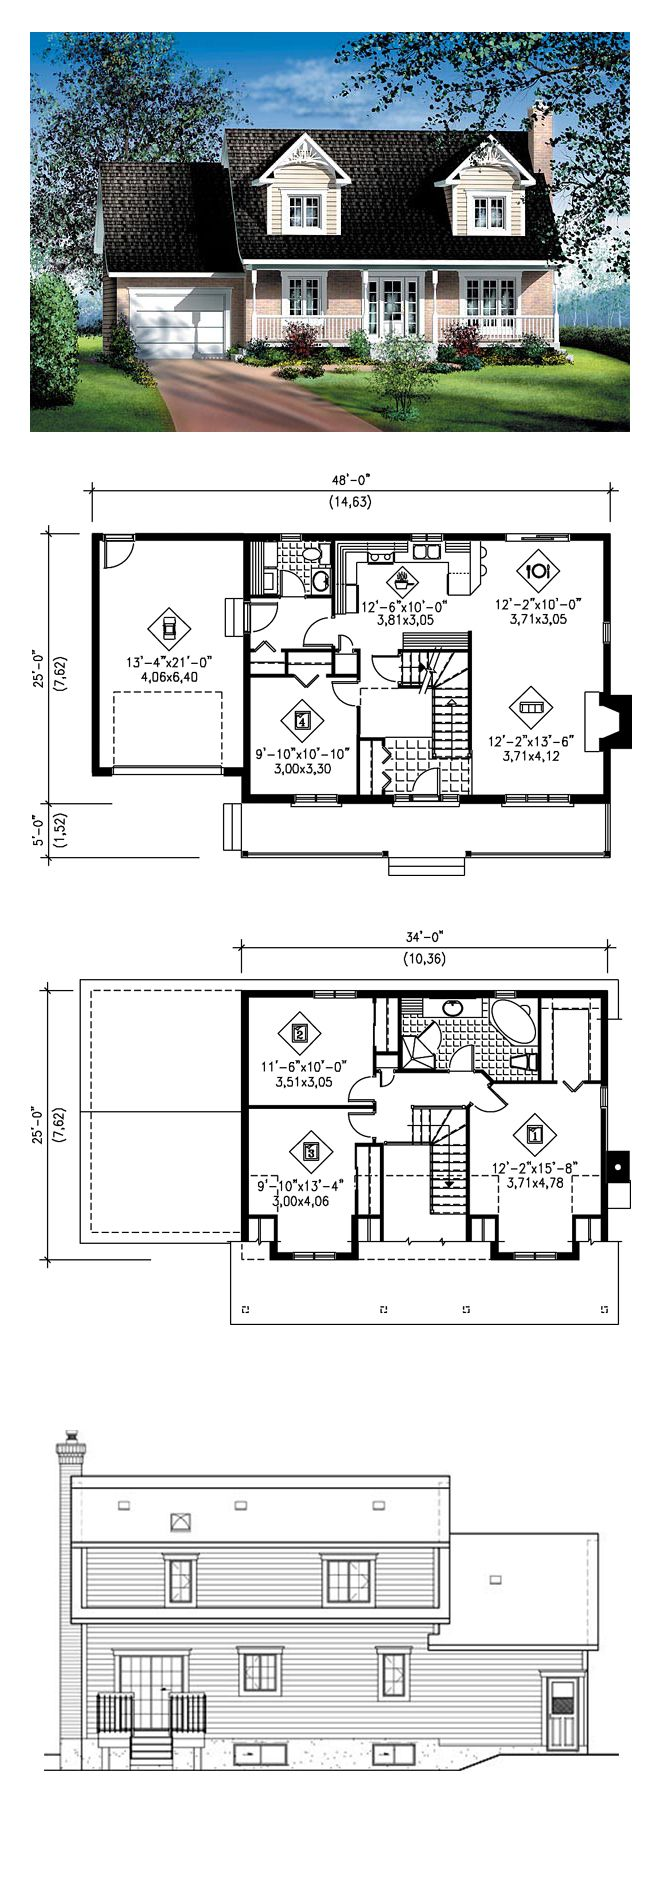 Cape cod house plan 49687 total living area 1564 sq ft for 5 bedroom cape cod house plans